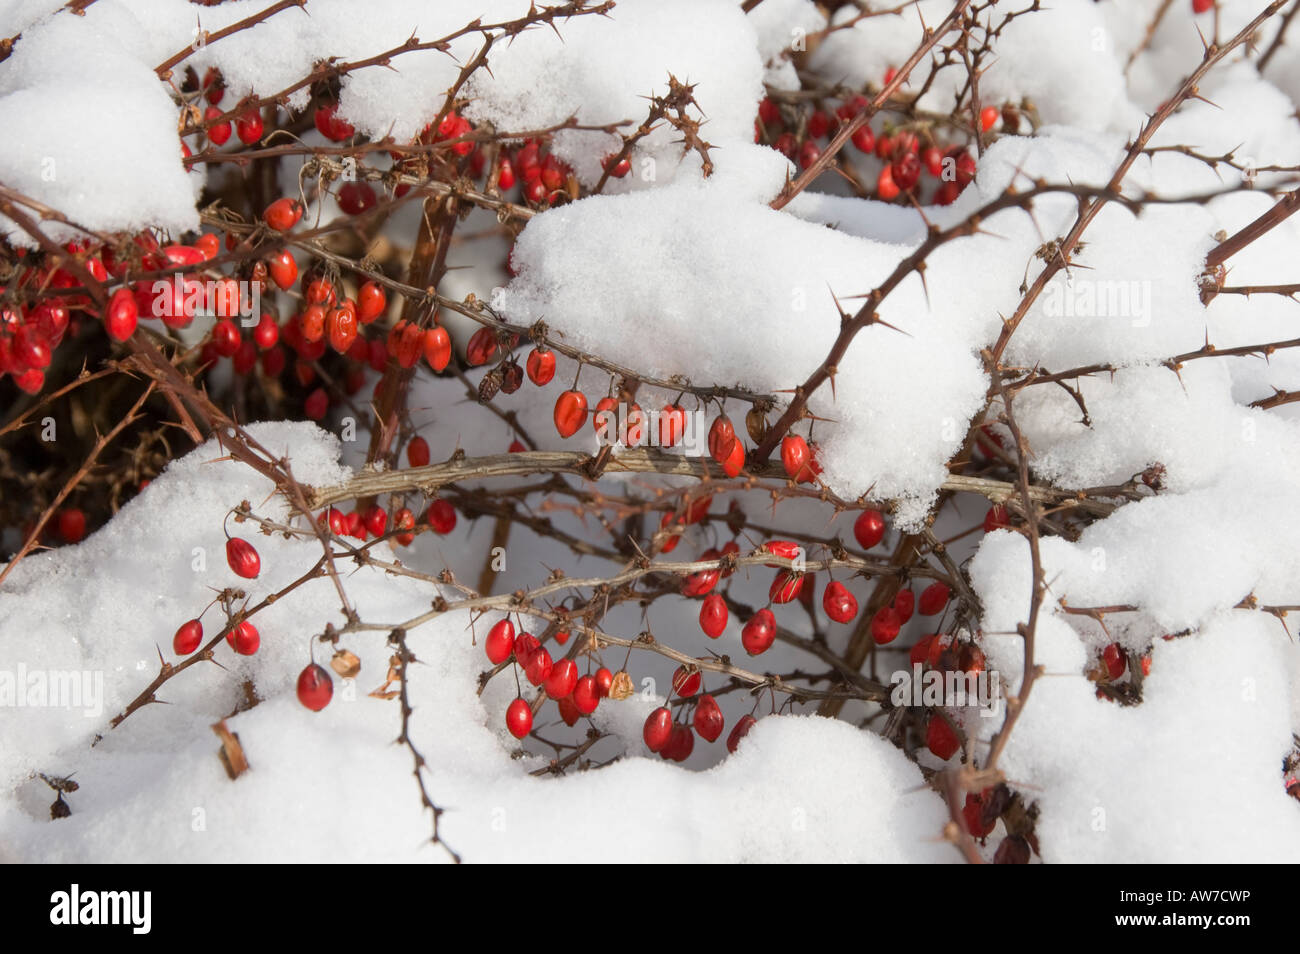 Red Berries In Snow With Thorns Close Up Detail Focus On Fruit